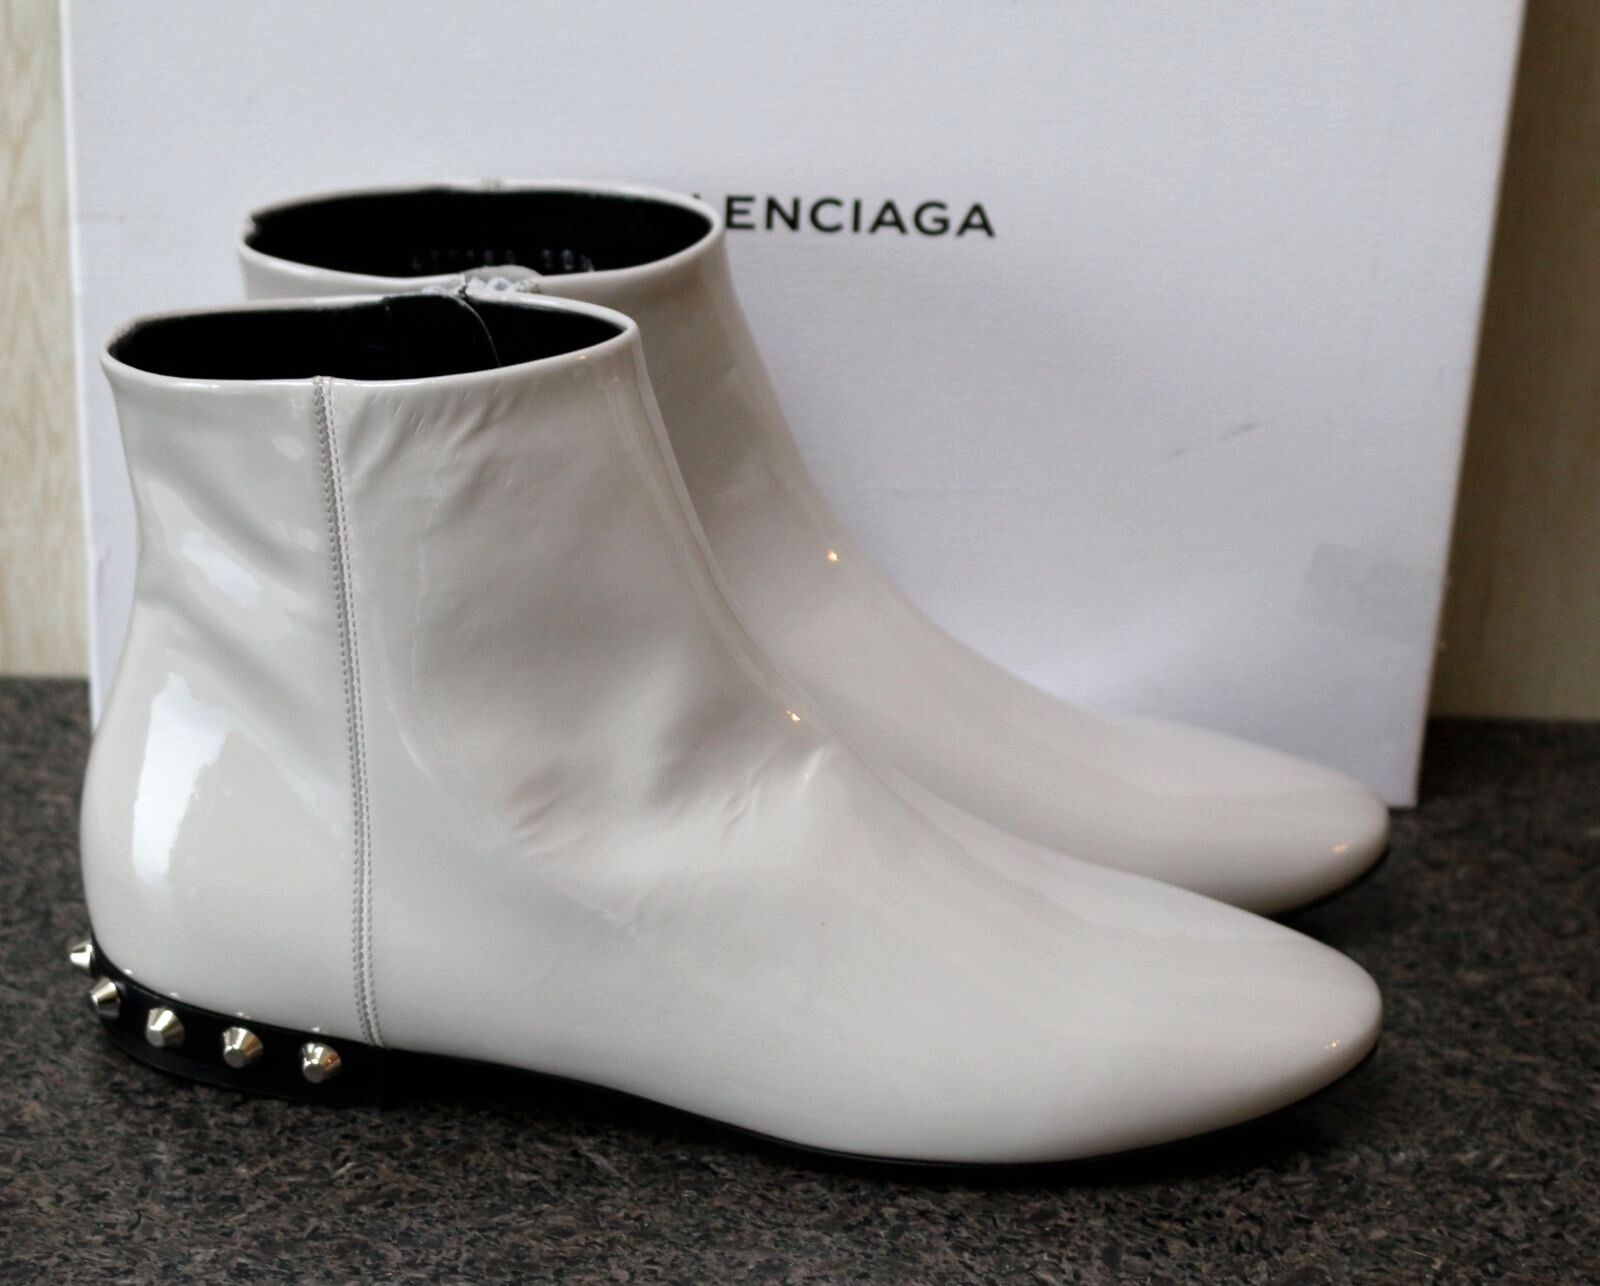 NIB AUTHENTIC BALENCIAGA PARIS GREY PATENT LEATHER ANKLE BOOTIES BOOTS Shoe 38.5